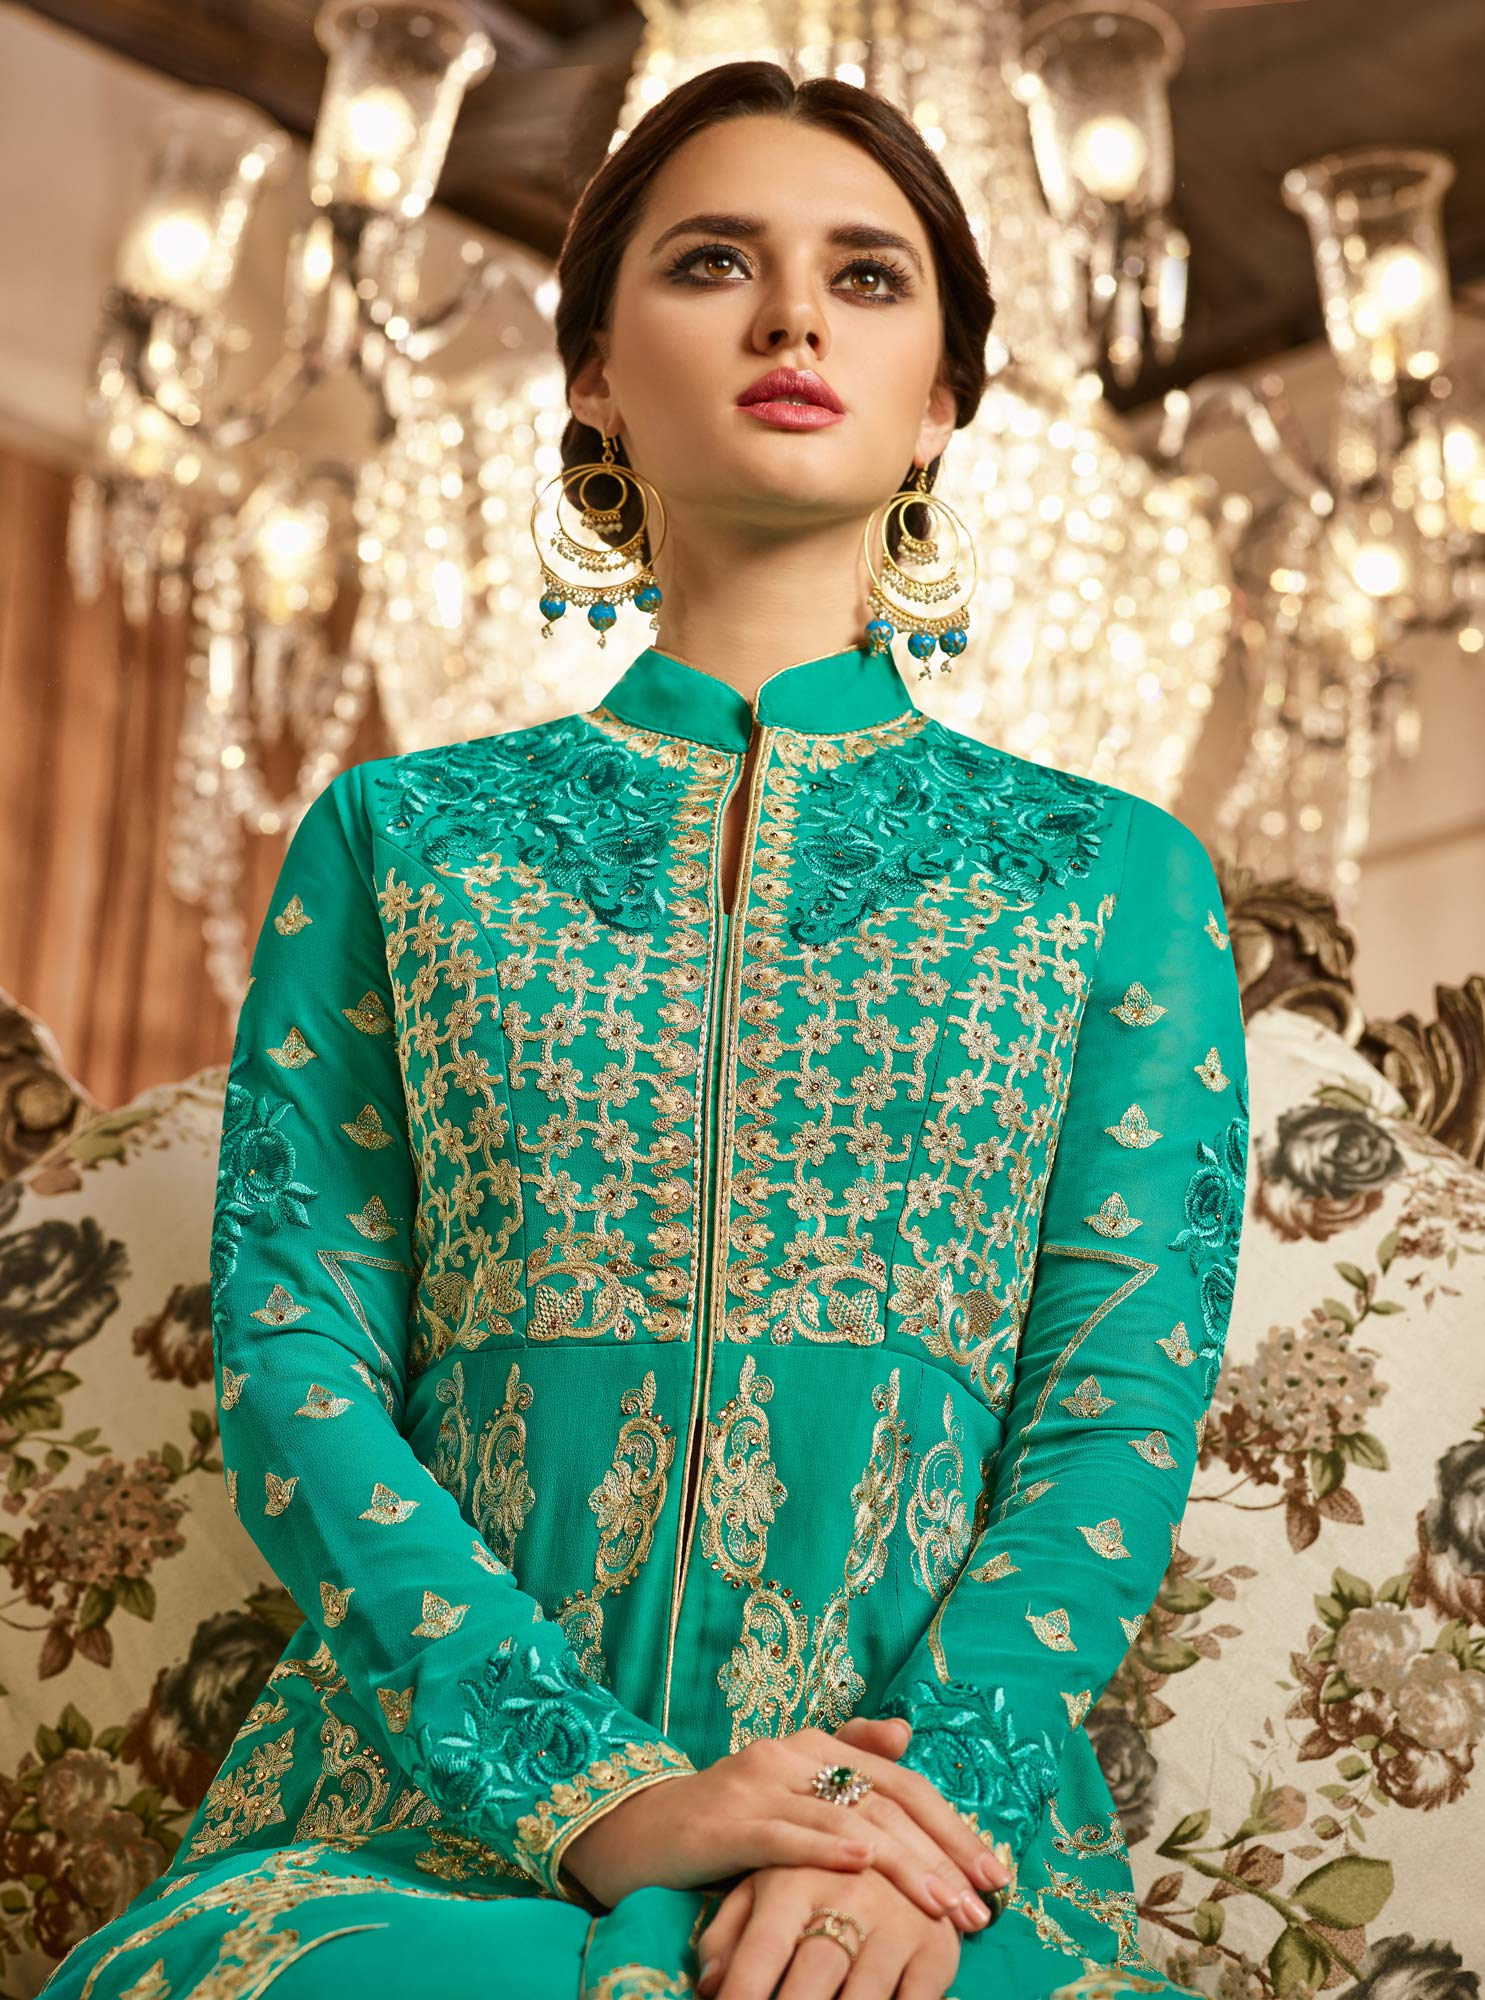 Dazzling Teal Colored Designer Lehenga Kameez